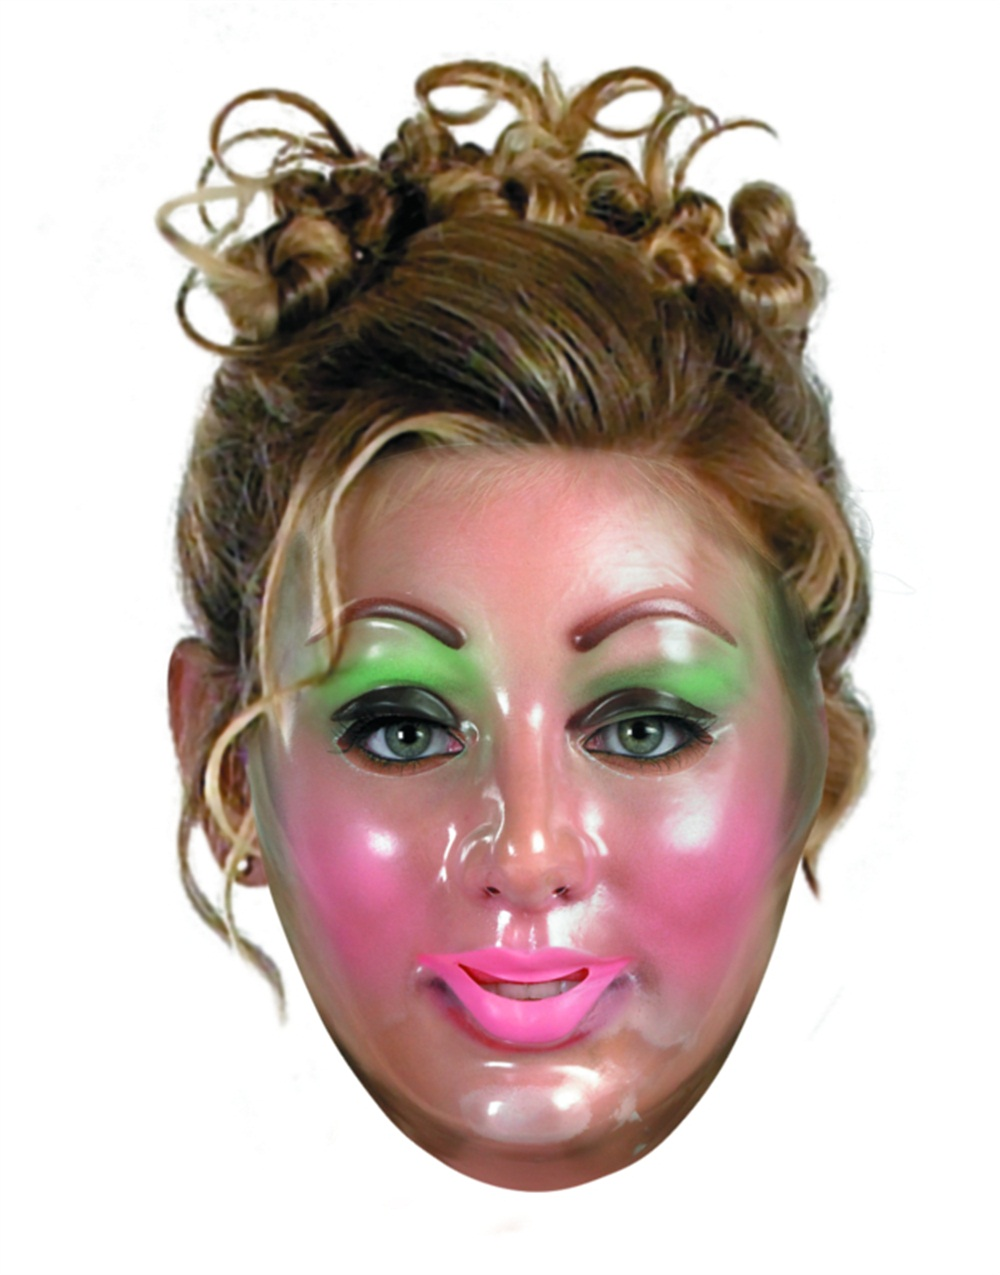 Plastic Young Female Transparent Mask Halloween Accessory ...